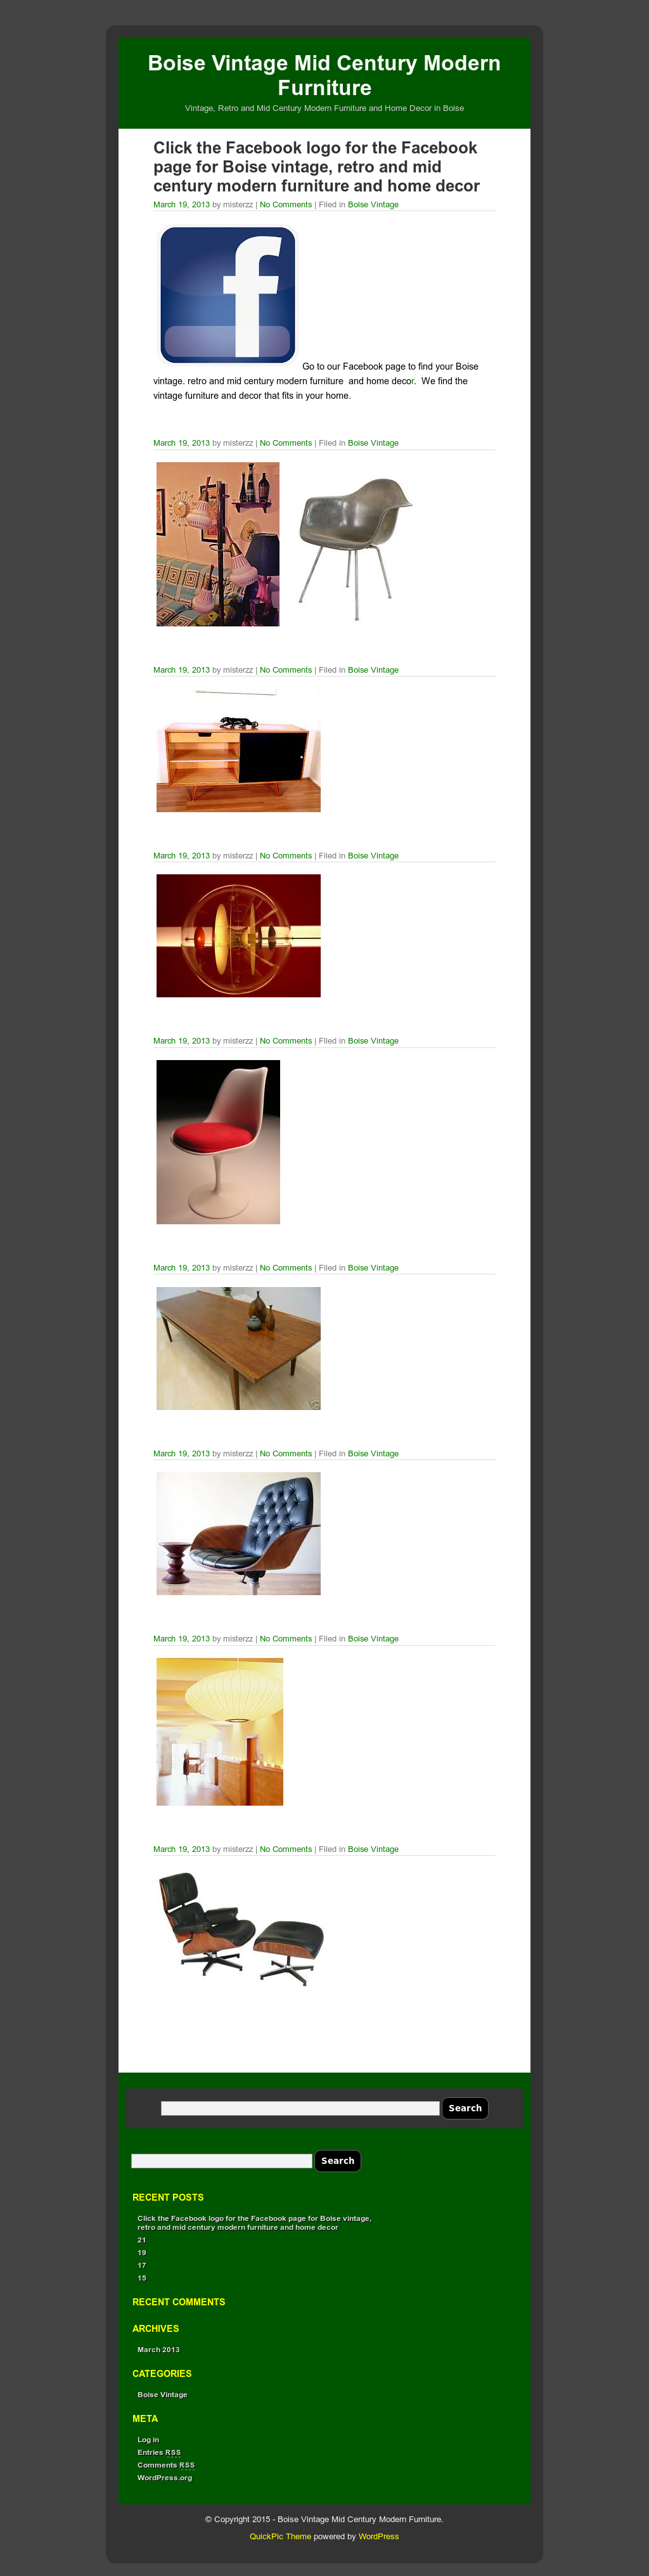 Boise vintage mid century modern furniture competitors revenue and employees owler company profile